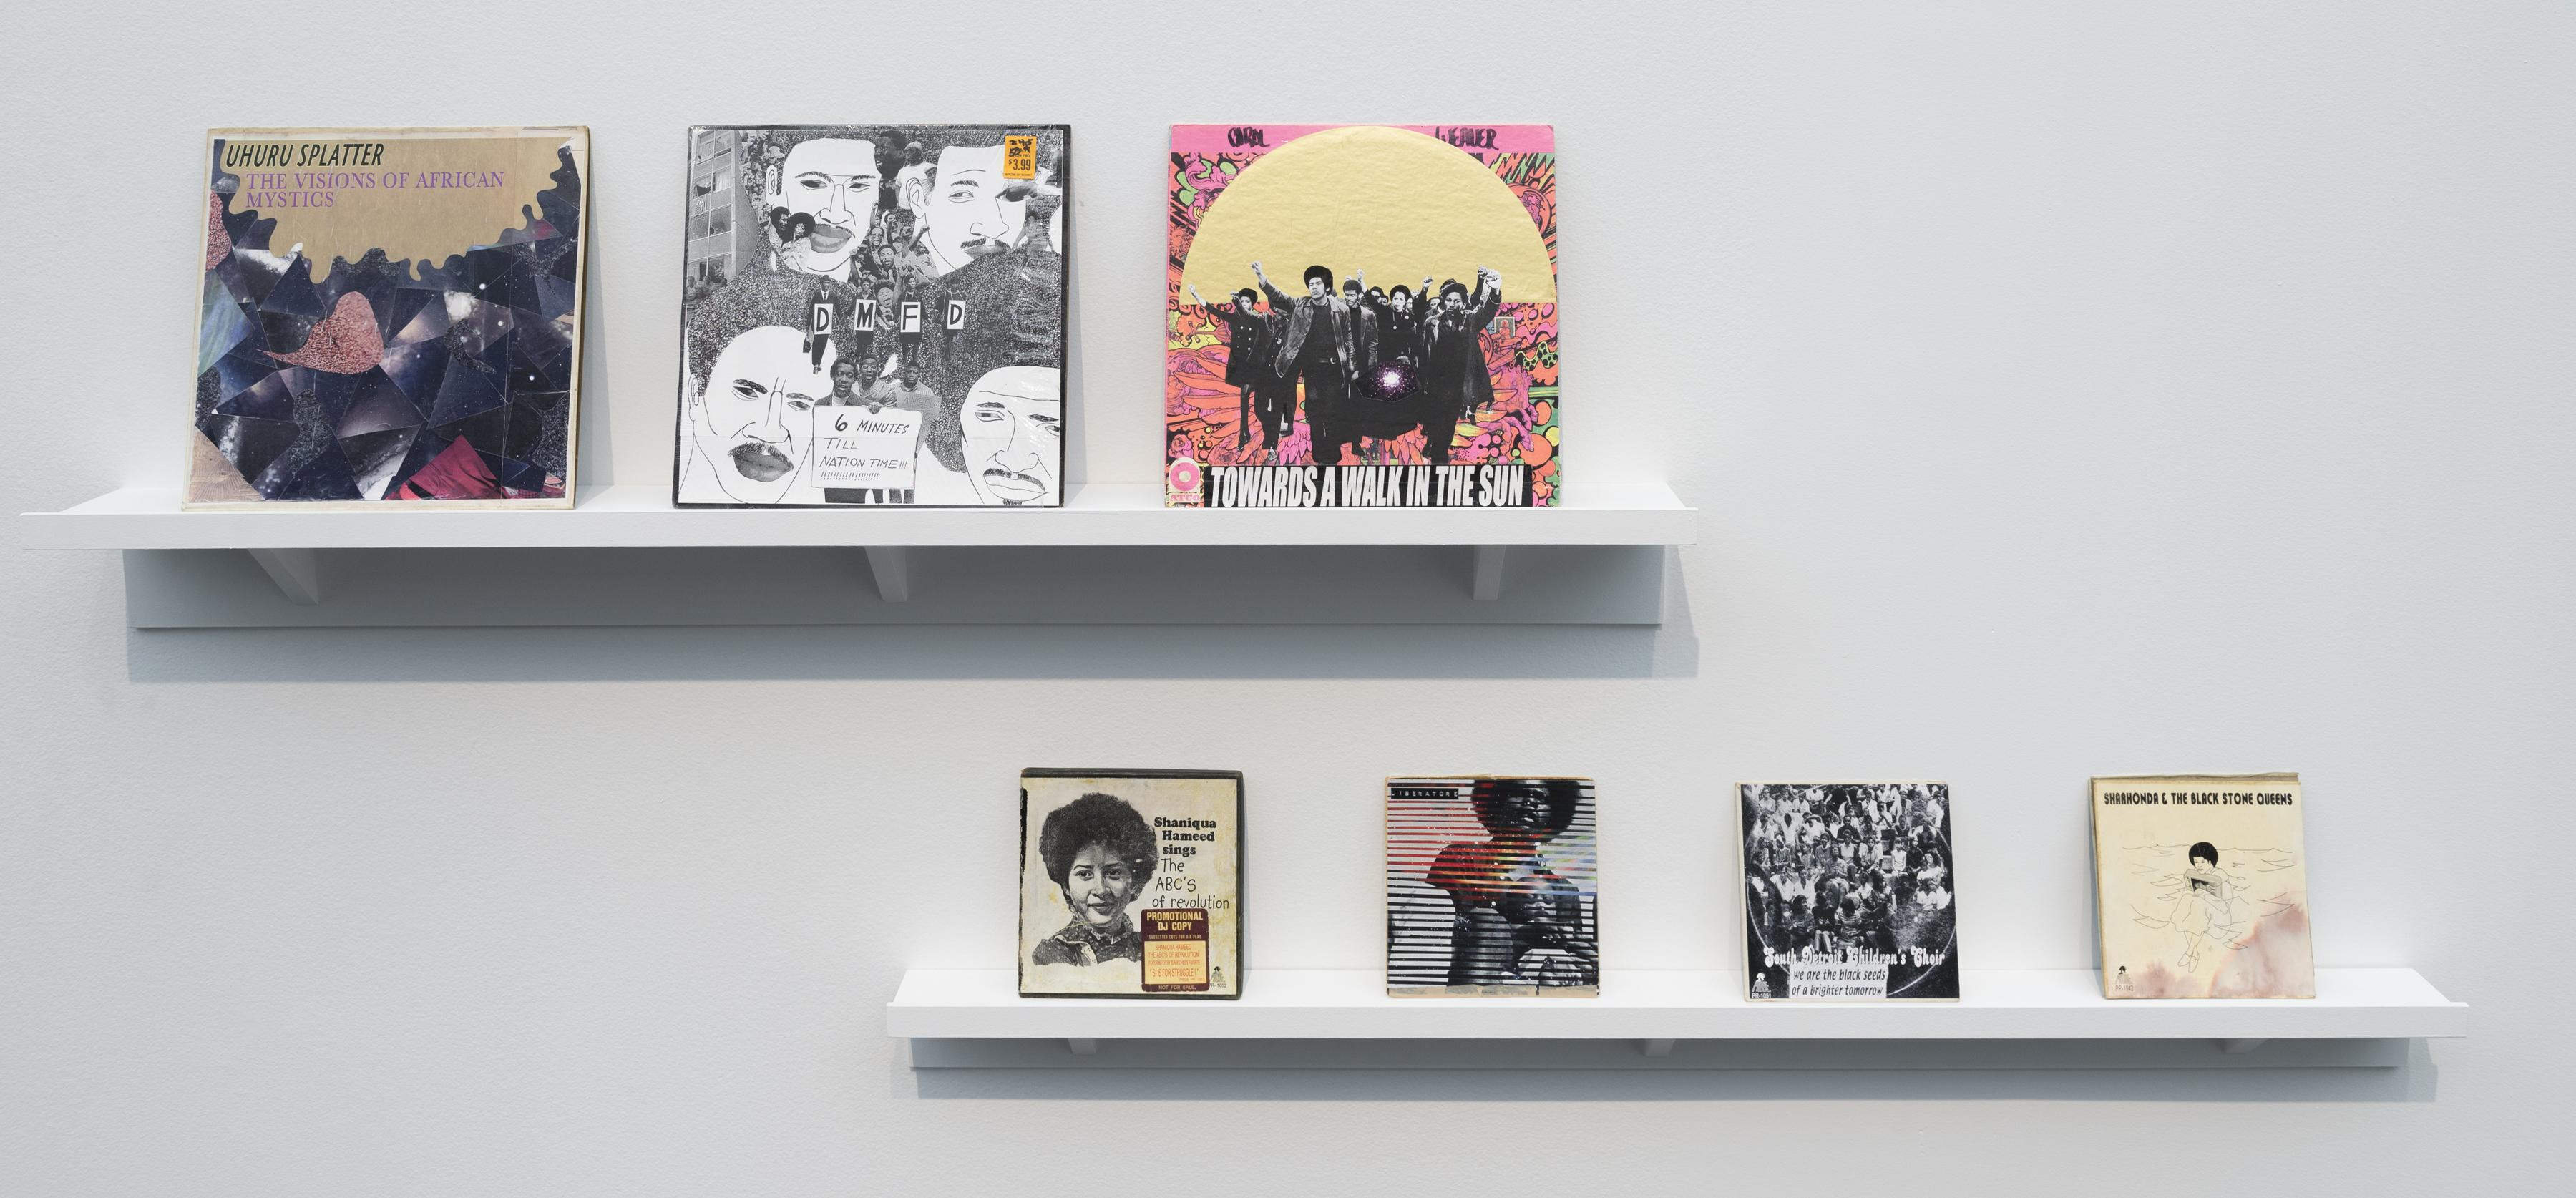 Two wall shelves display a group of illustrated album covers